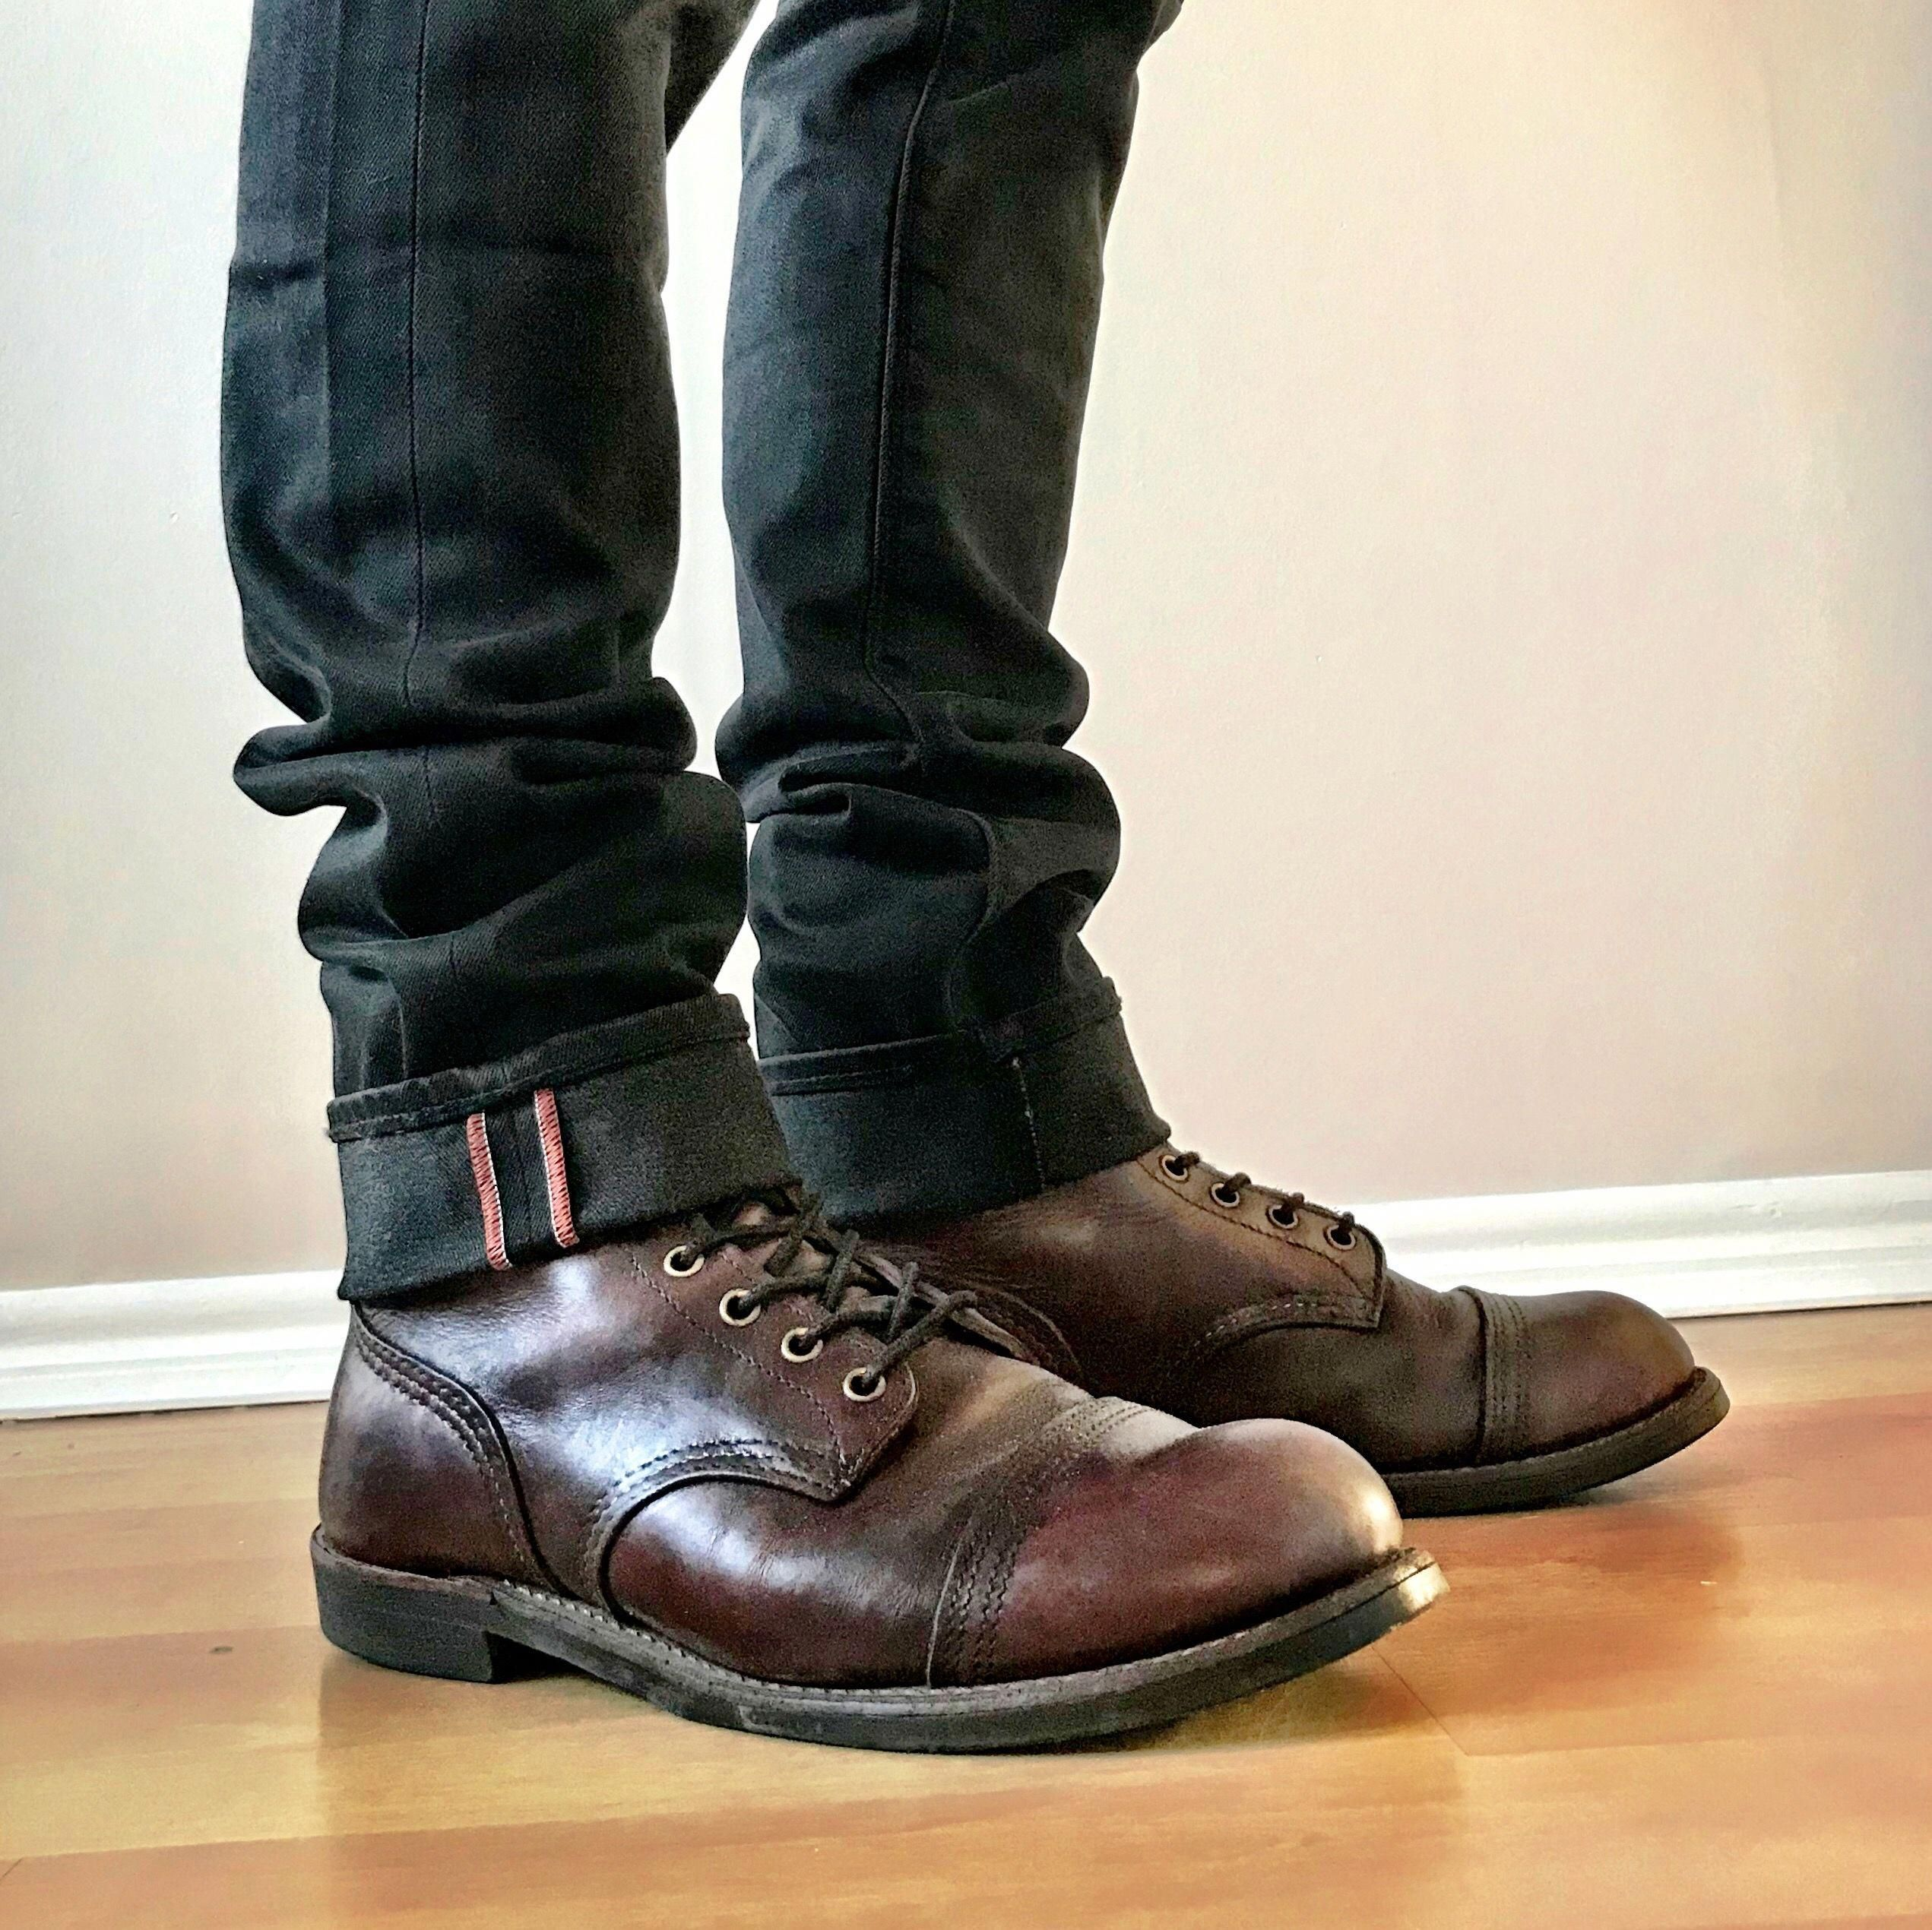 Iron ranger in 2020 | Boots, Red wing iron ranger, Combat boots